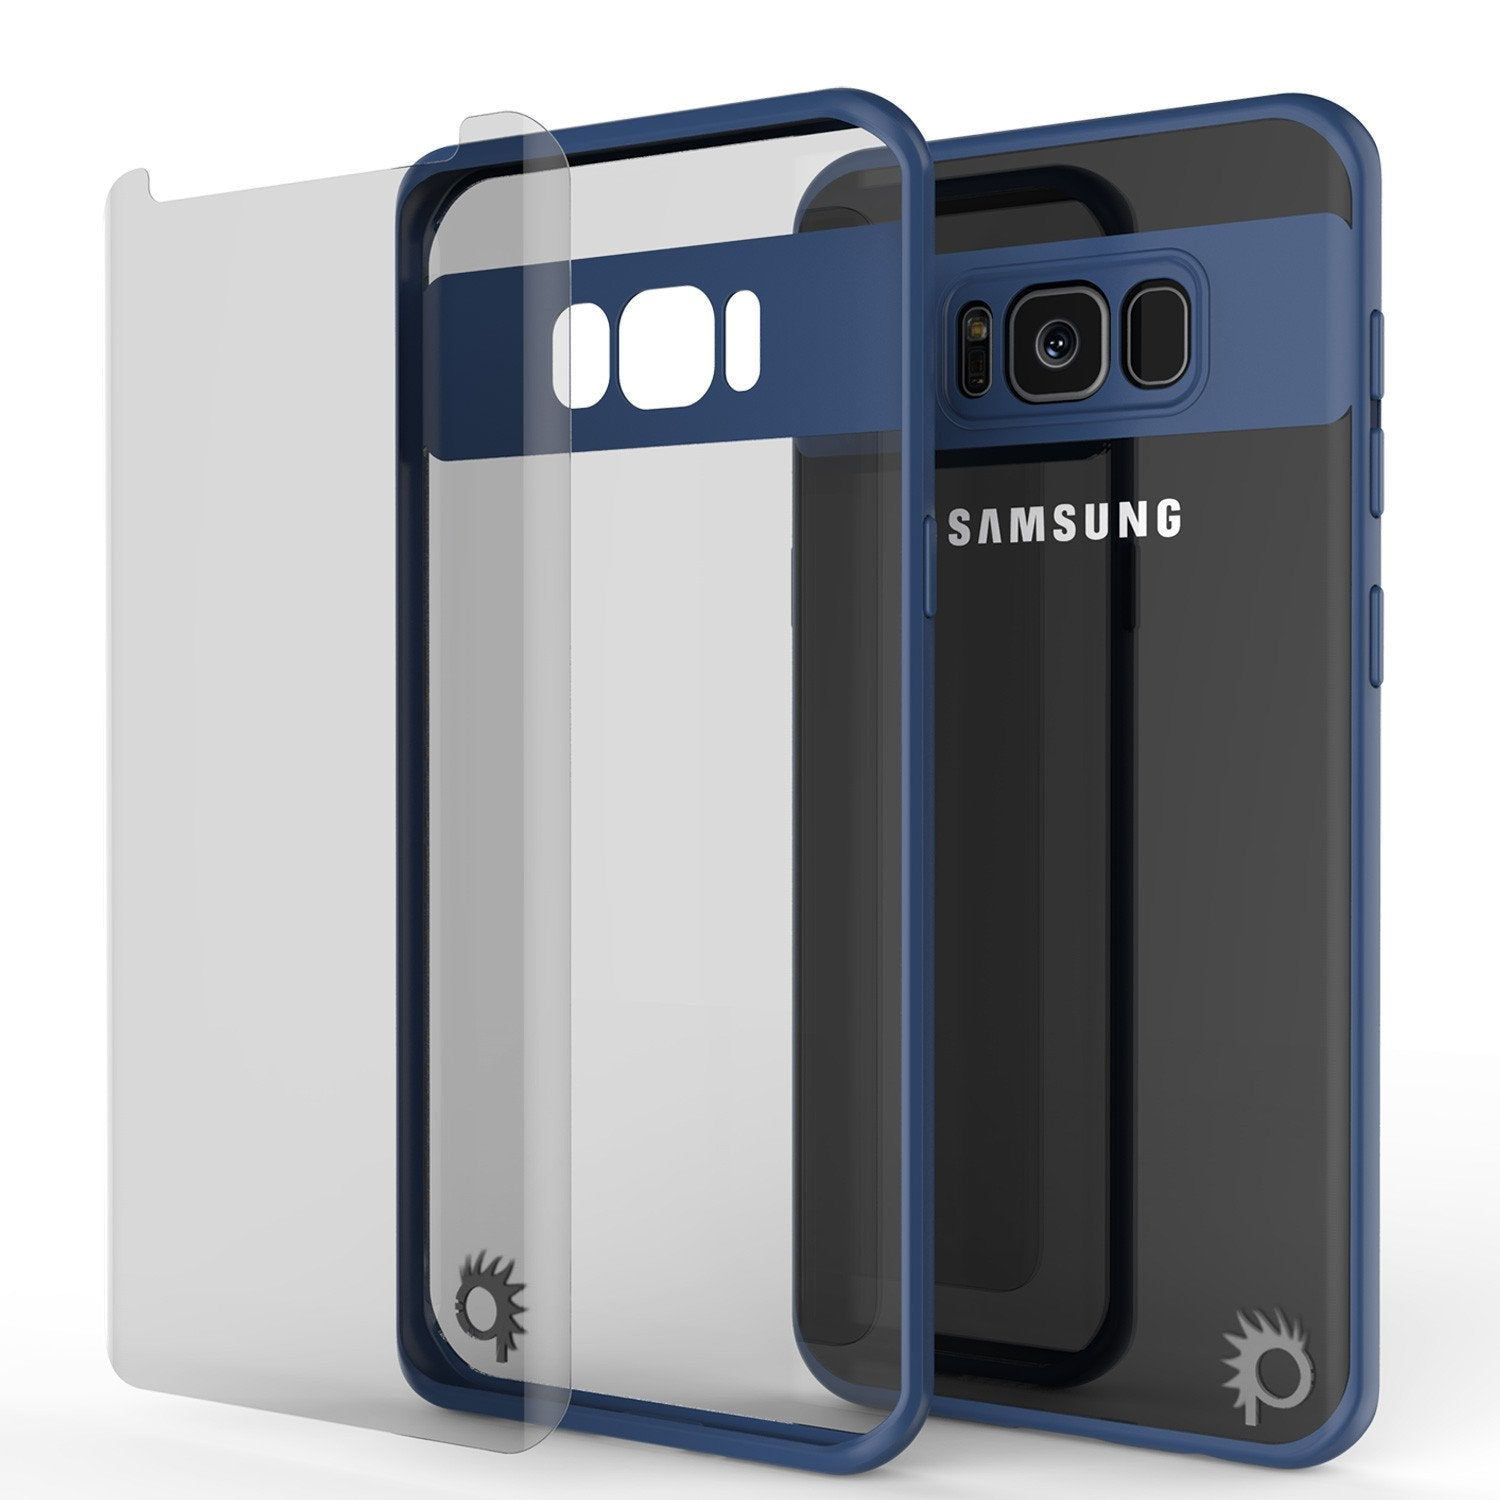 Galaxy S8 Plus Case, Punkcase [MASK Series] [NAVY] Full Body Hybrid Dual Layer TPU Cover W/ Protective PUNKSHIELD Screen Protector - PunkCase NZ